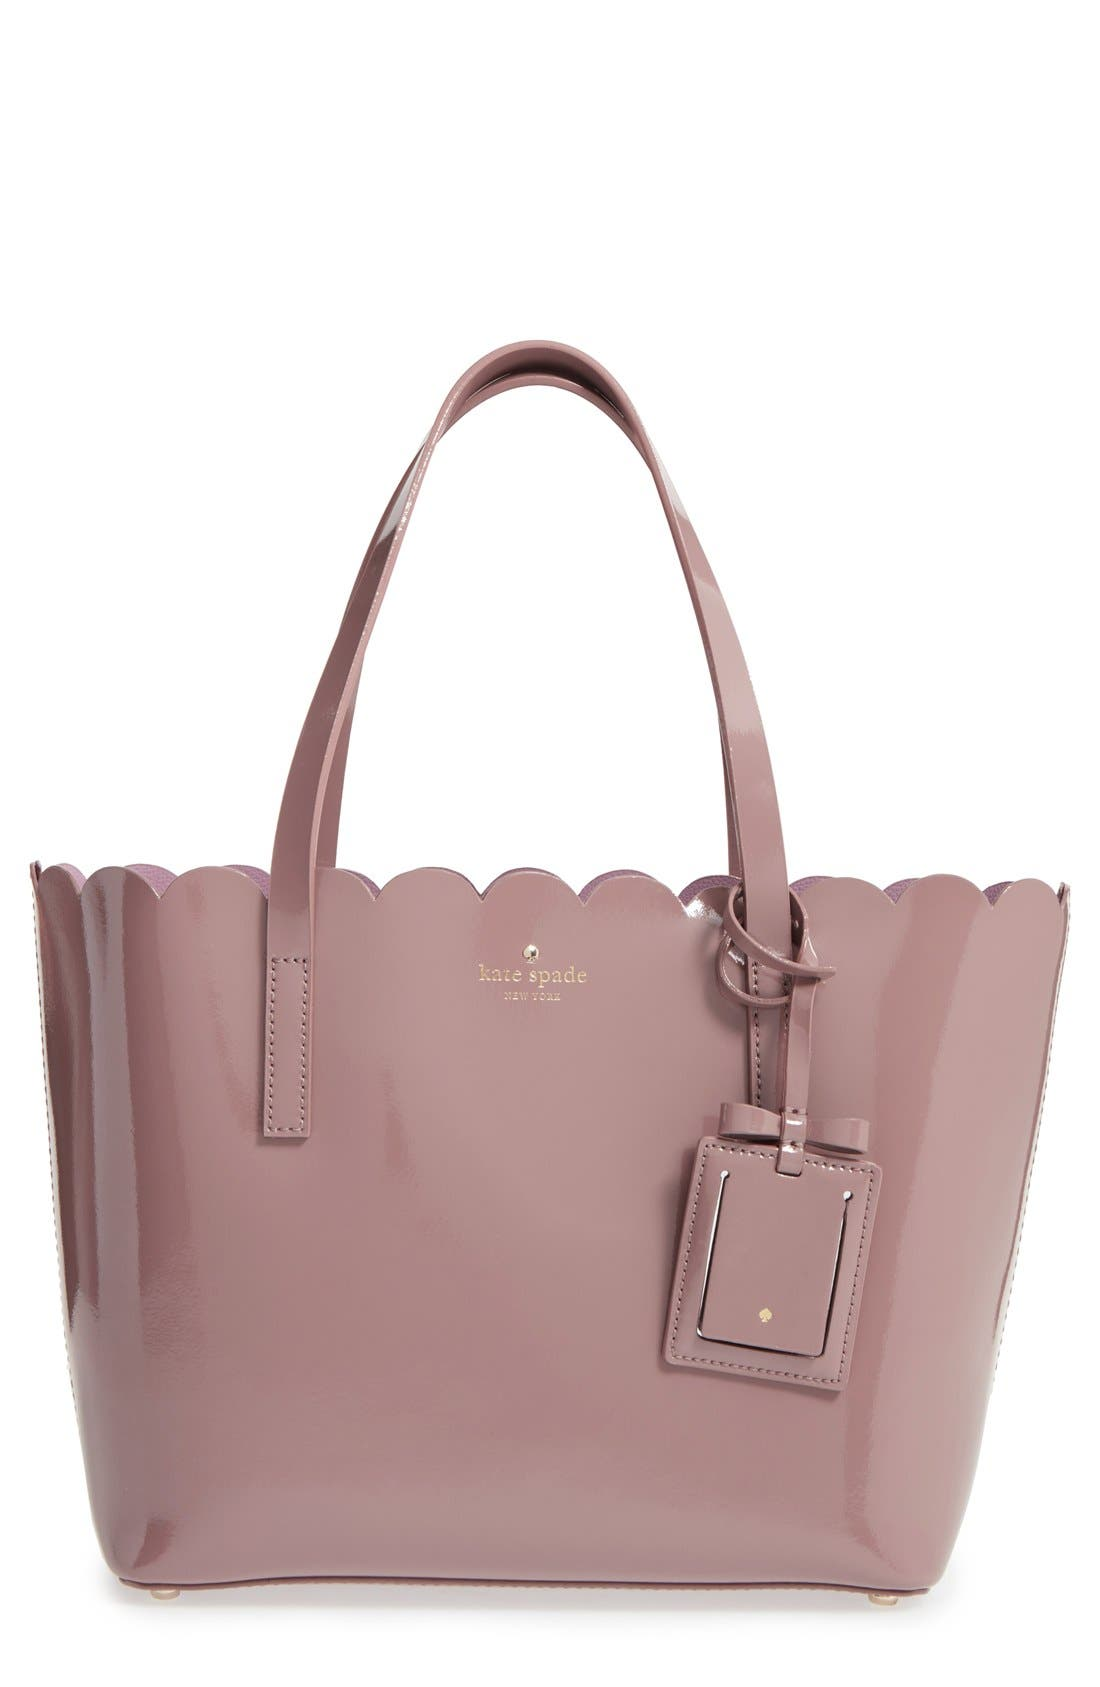 Main Image - kate spade new york 'lily avenue patent - small carrigan' leather tote